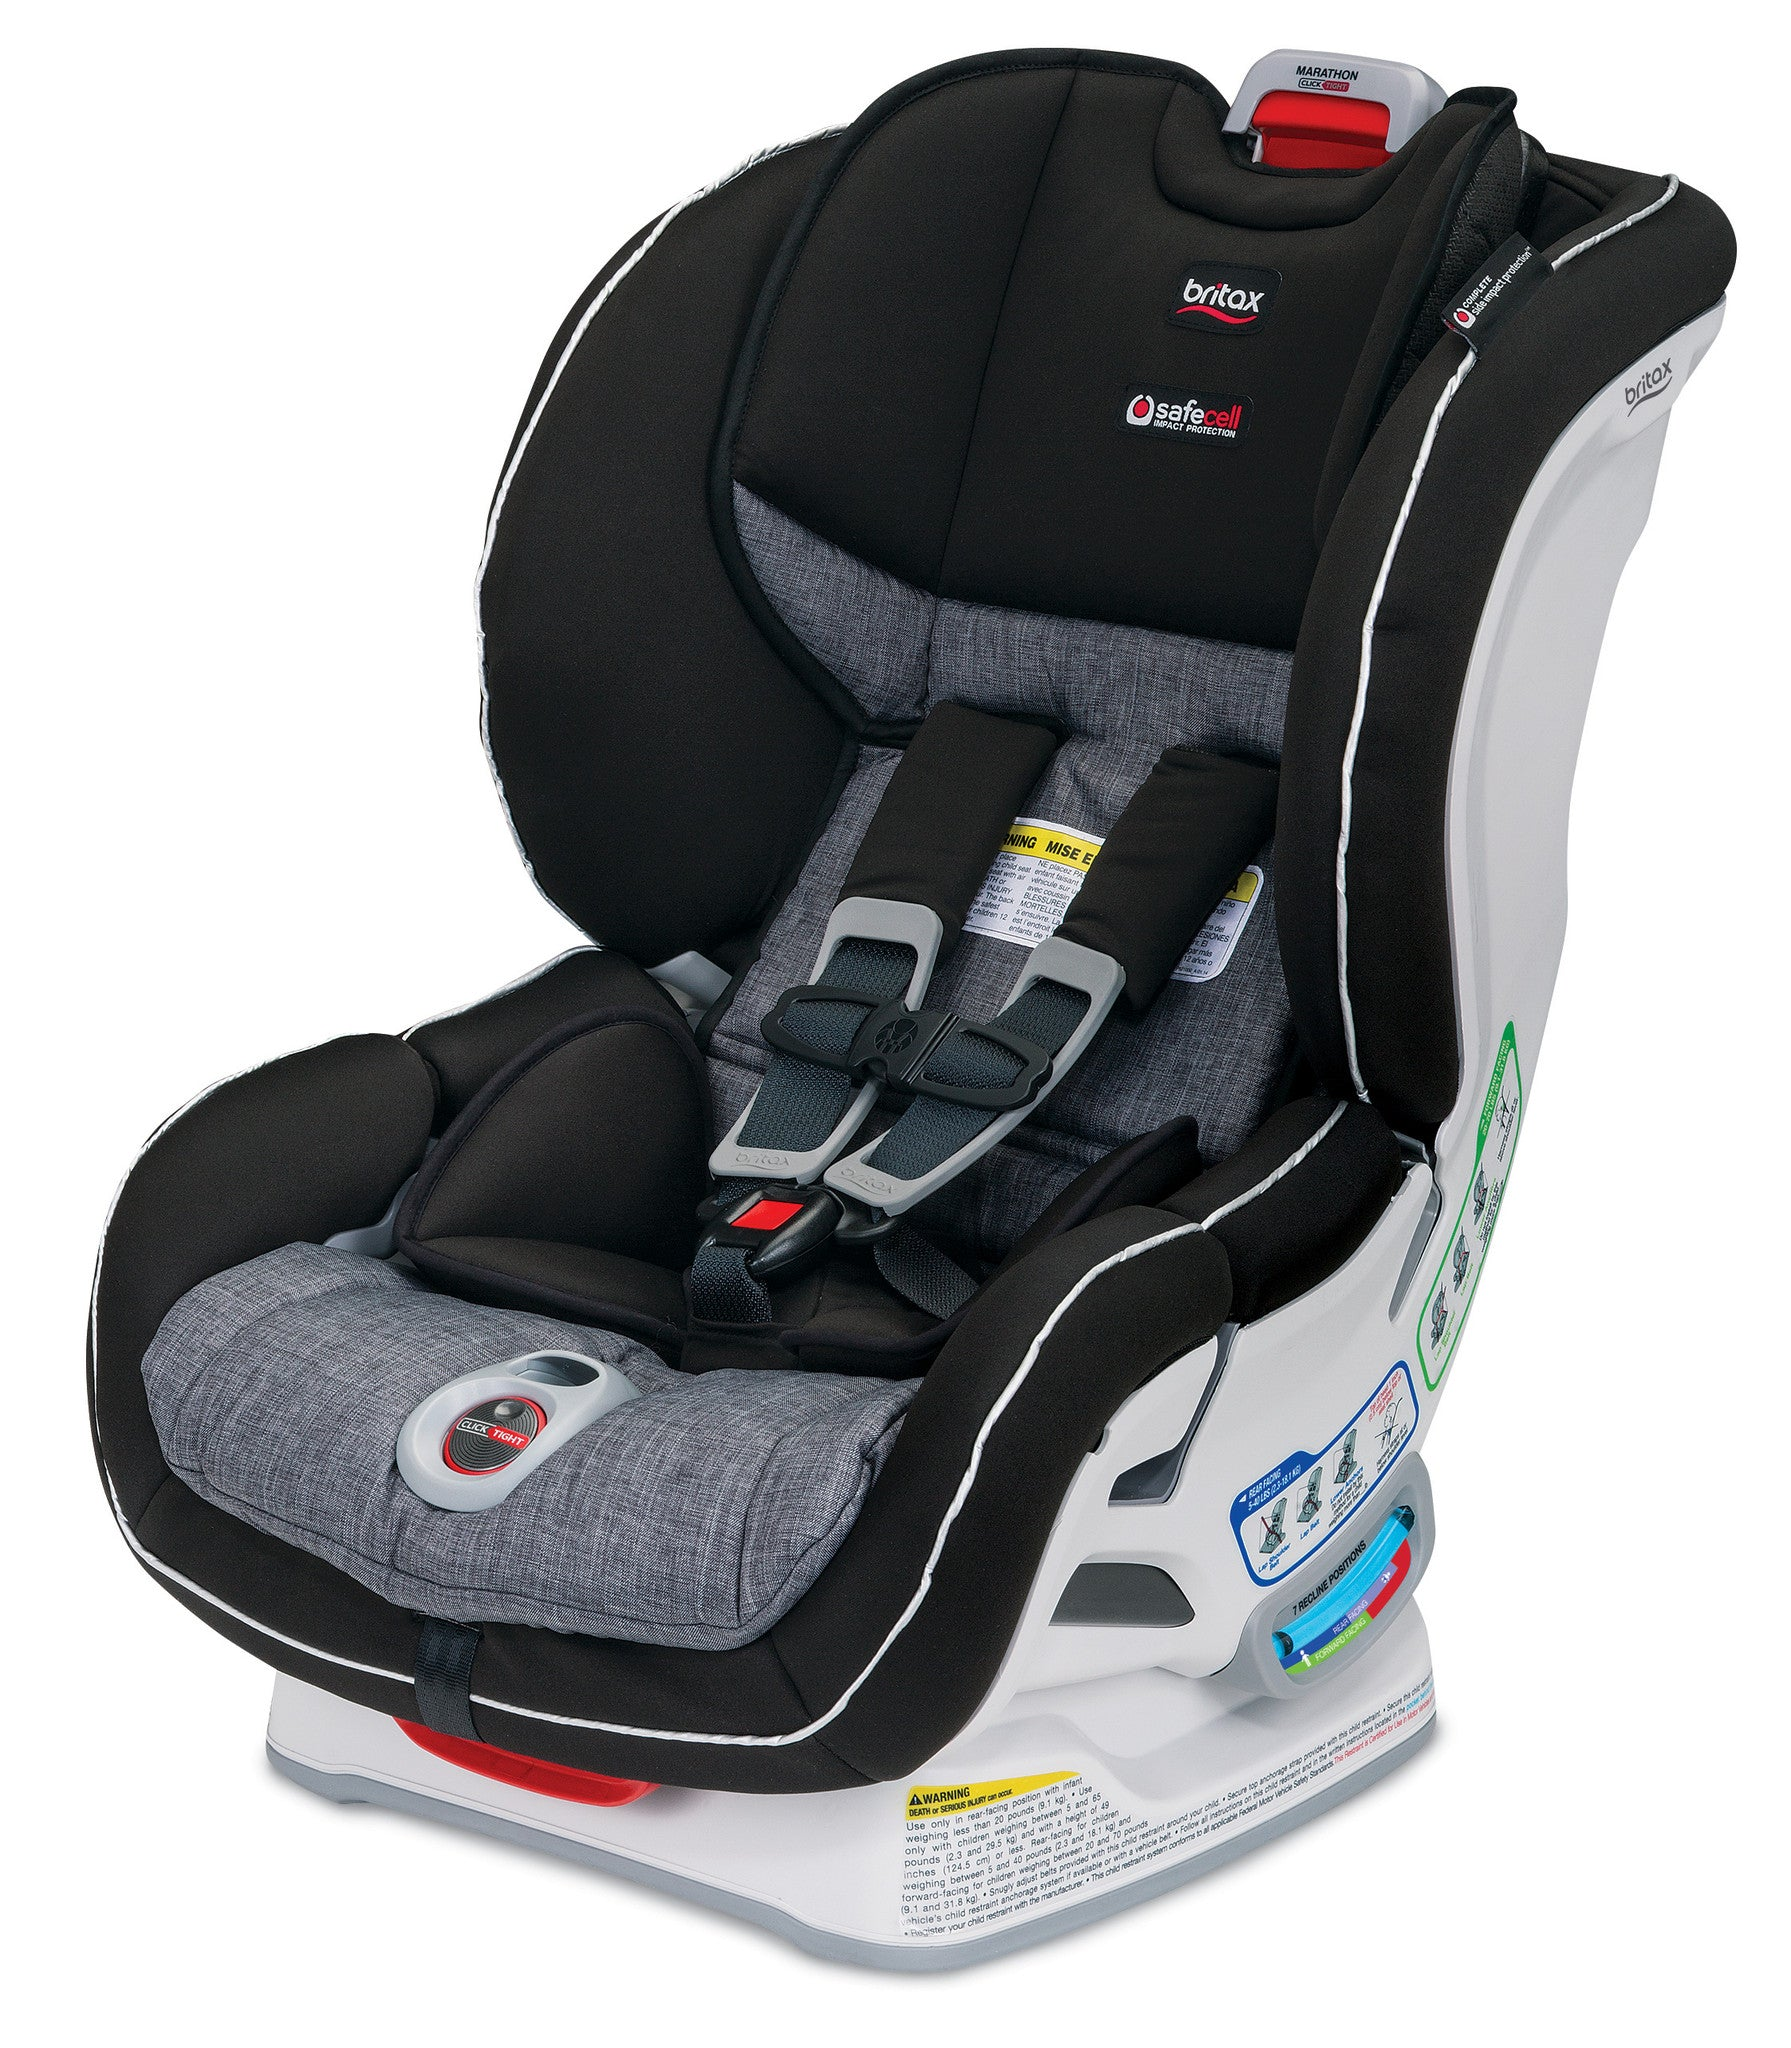 britax marathon clicktight car seat. Black Bedroom Furniture Sets. Home Design Ideas